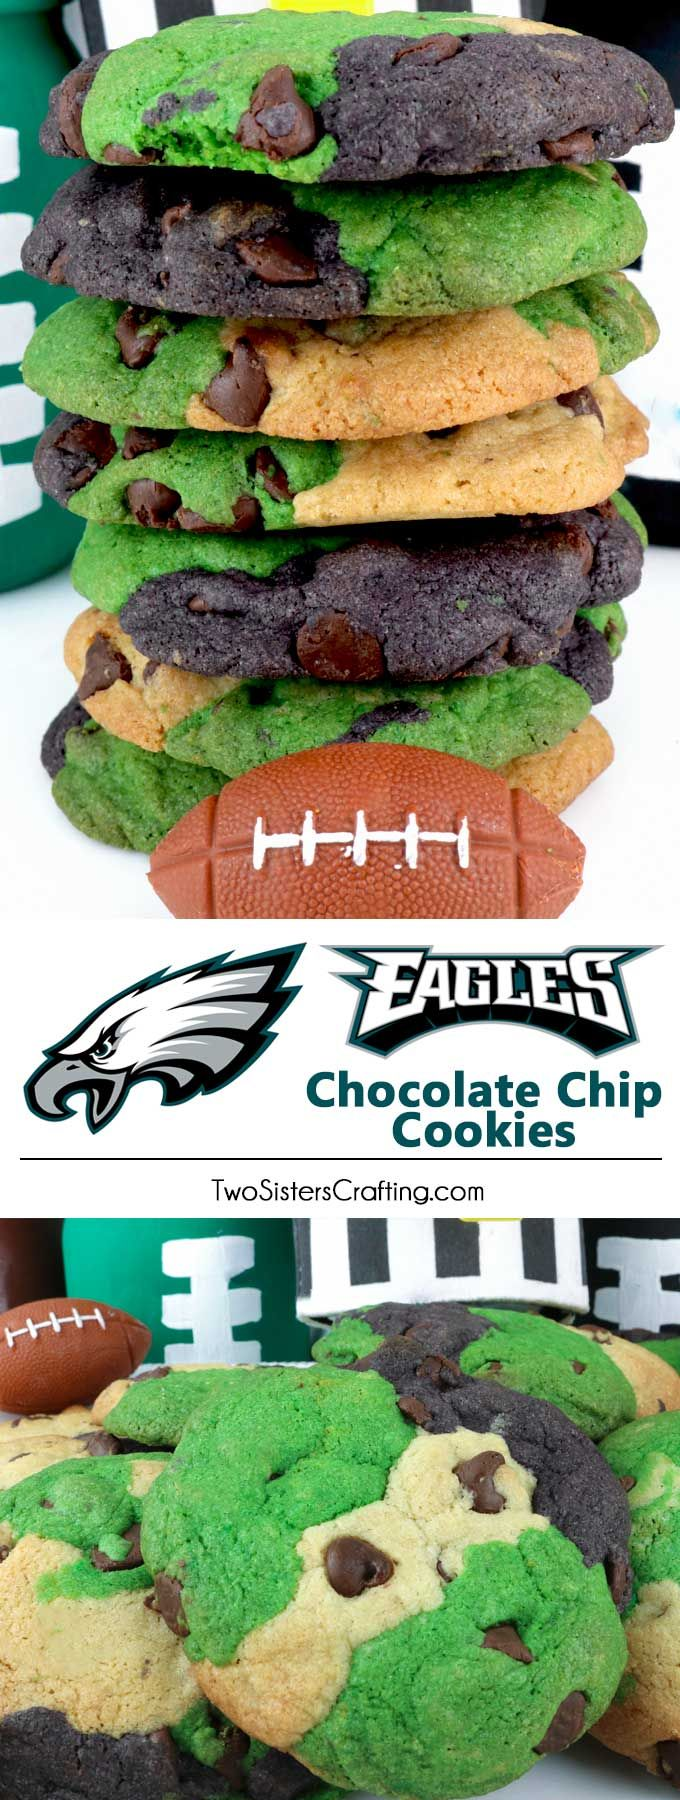 Philadelphia Eagles Chocolate Chip Cookies - - a classic cookie recipe suited up in team colors. Super easy to make and it will definitely wow your family and friends at a Football Game Day Event or a Super Bowl Party. Go Eagles! #PhiladelphiaEagles #Eagles #GameDayTreat #SuperBowl #SuperBowlParty #PhiladelphiaEaglesFood via @2SistersCraft